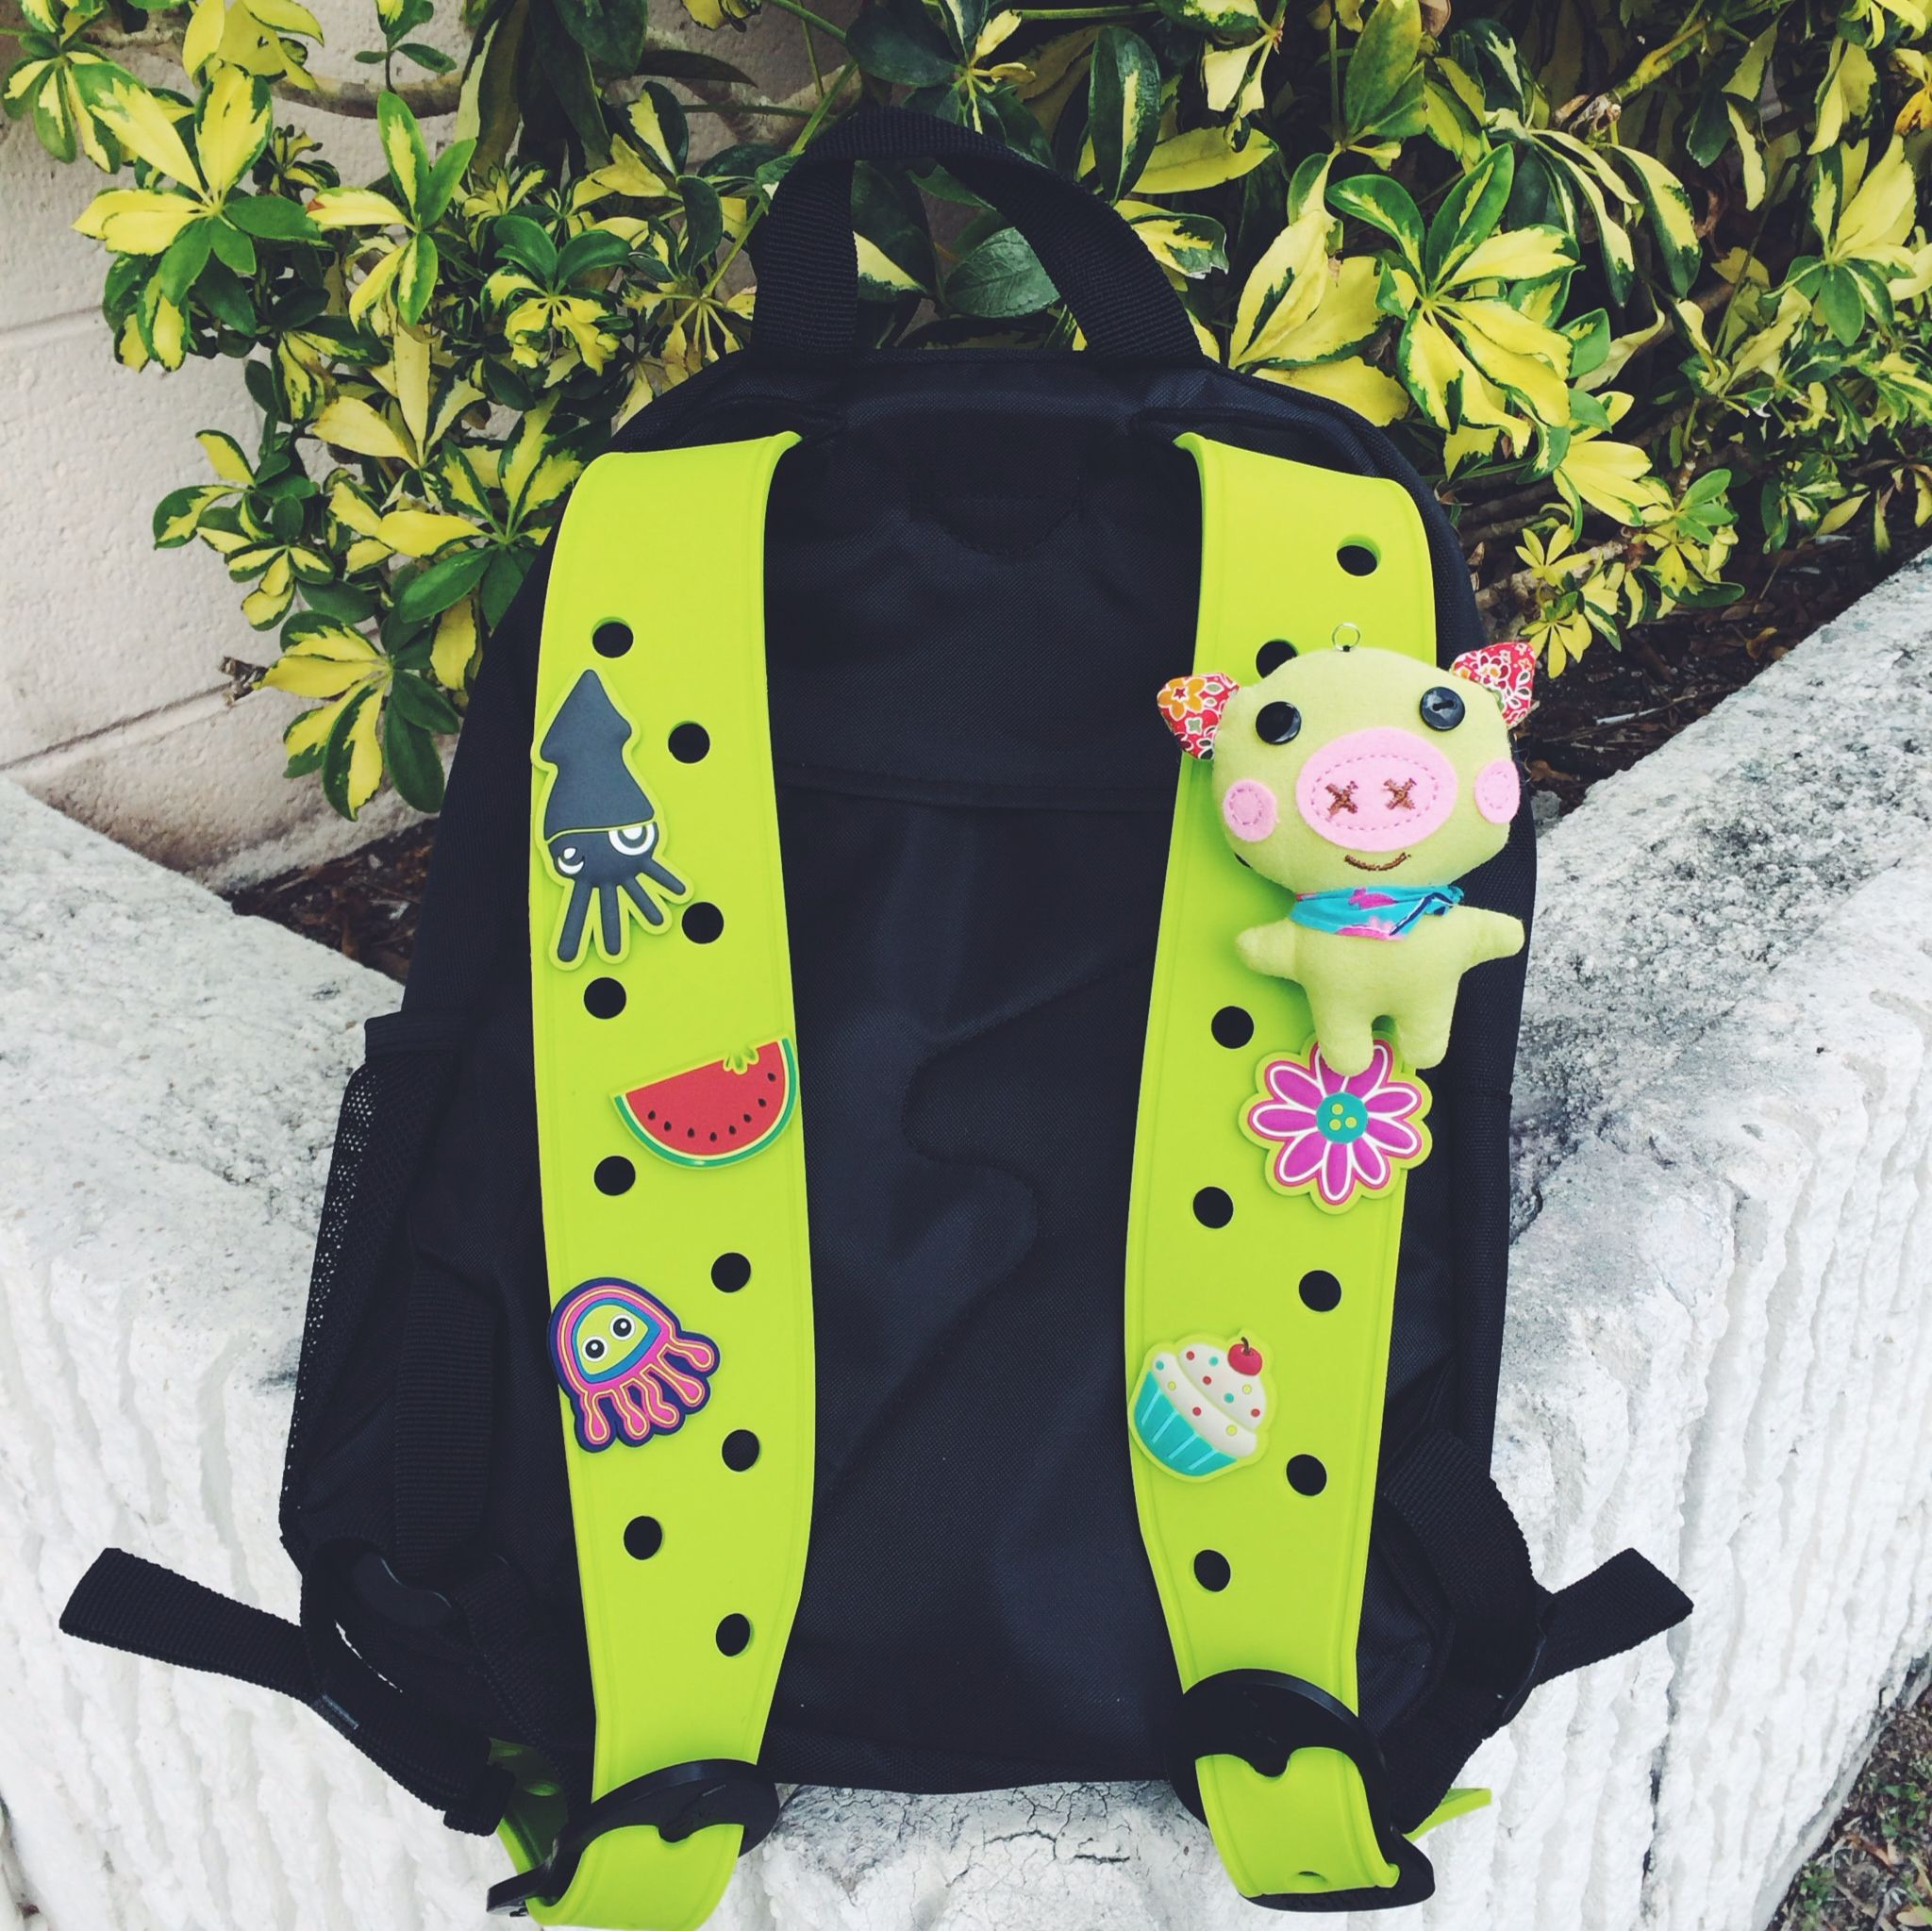 St.Patrick's ready with your SquidPack! #squidpacks #backpack #pinterest #school #stpatricksday #customizable #green